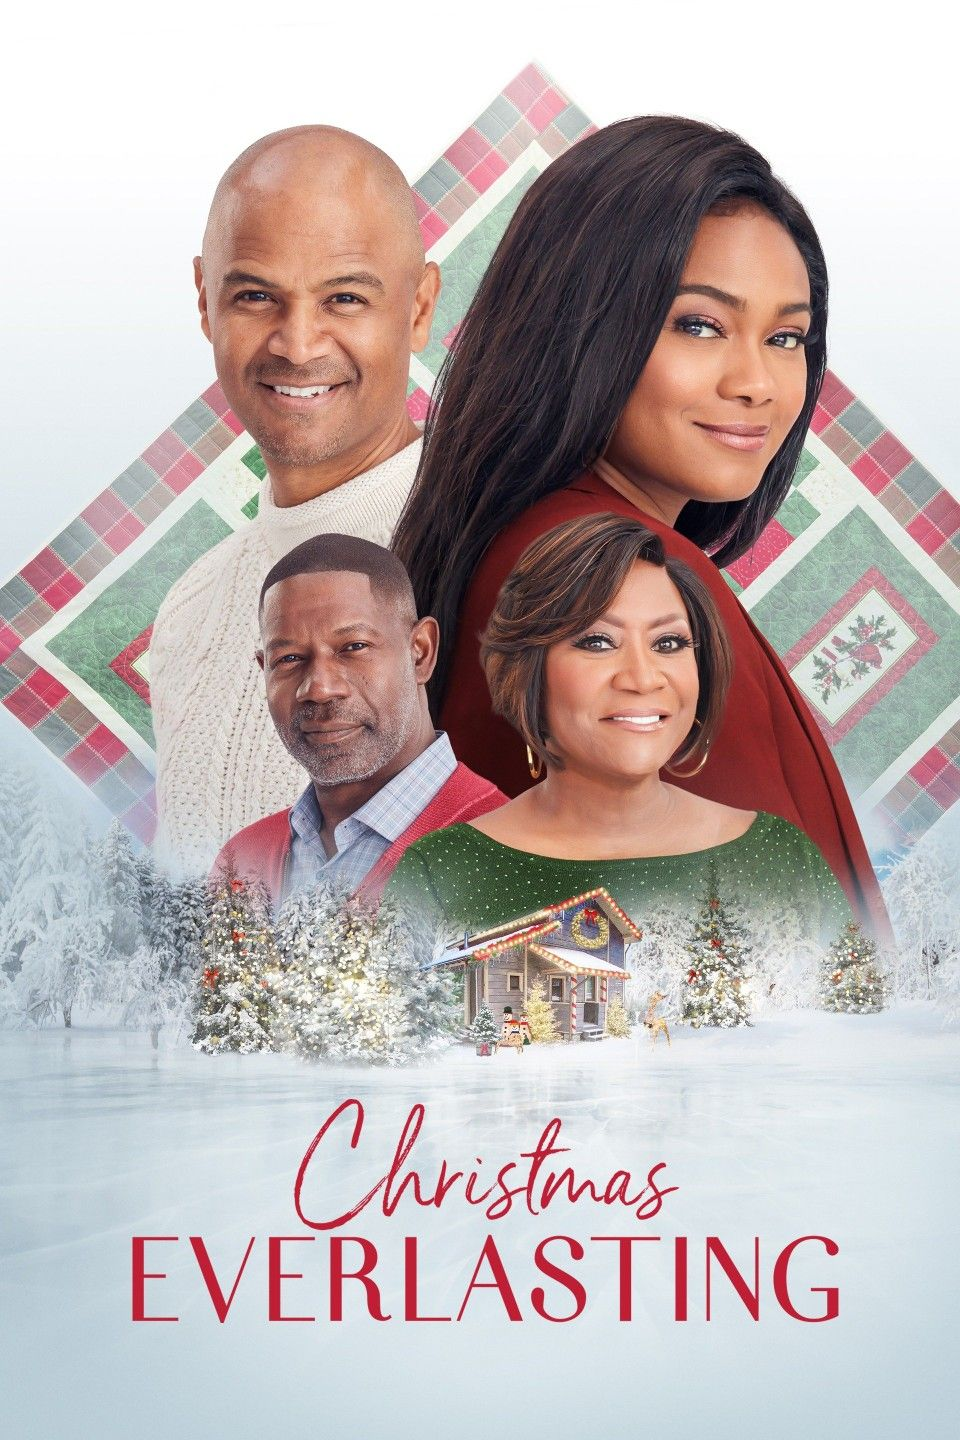 Hallmark Christmas Getaway Cast.This Was The First Time I Have Seen A Hallmark Christmas